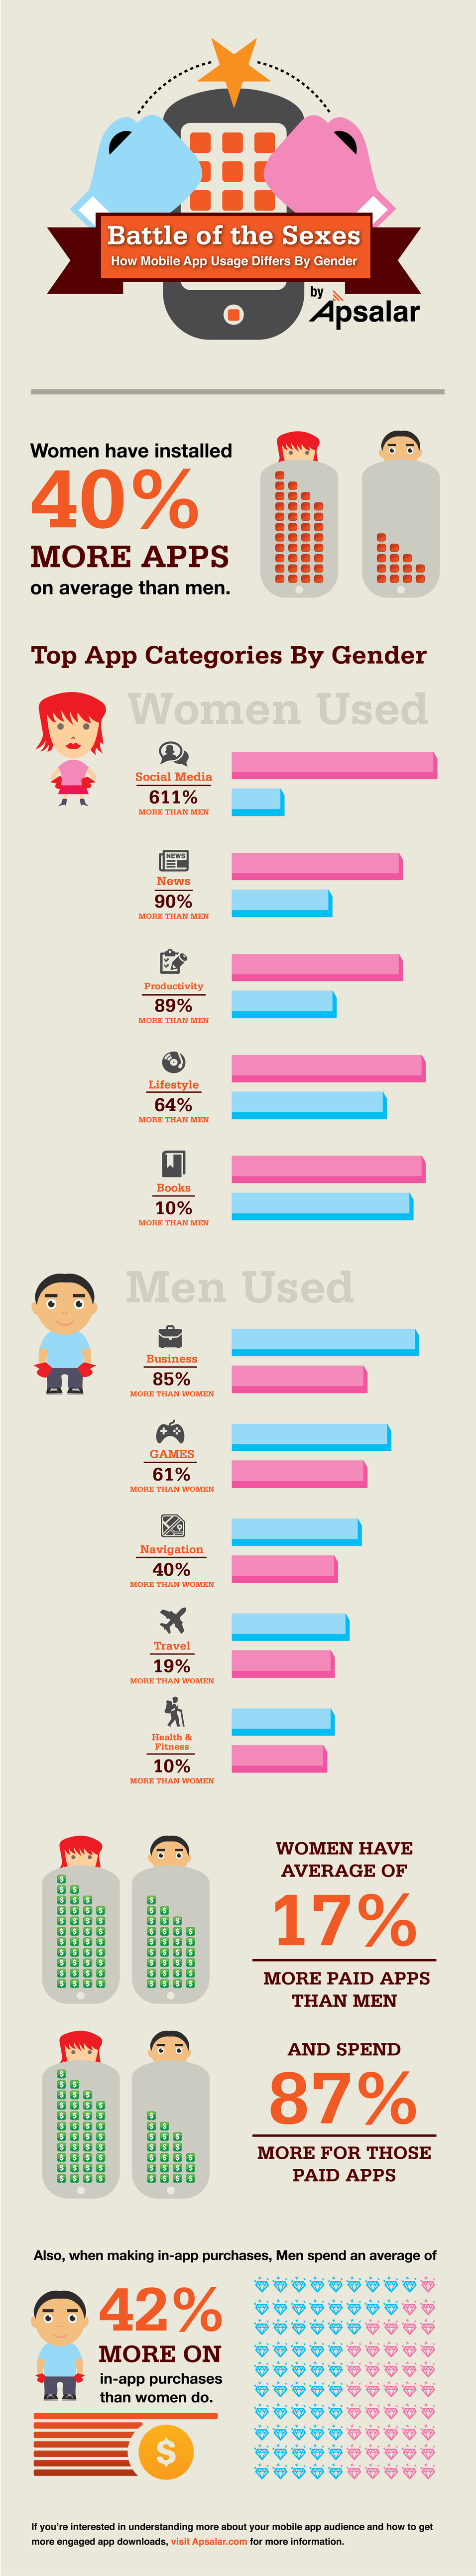 apsalar_mobile_gender_infographic